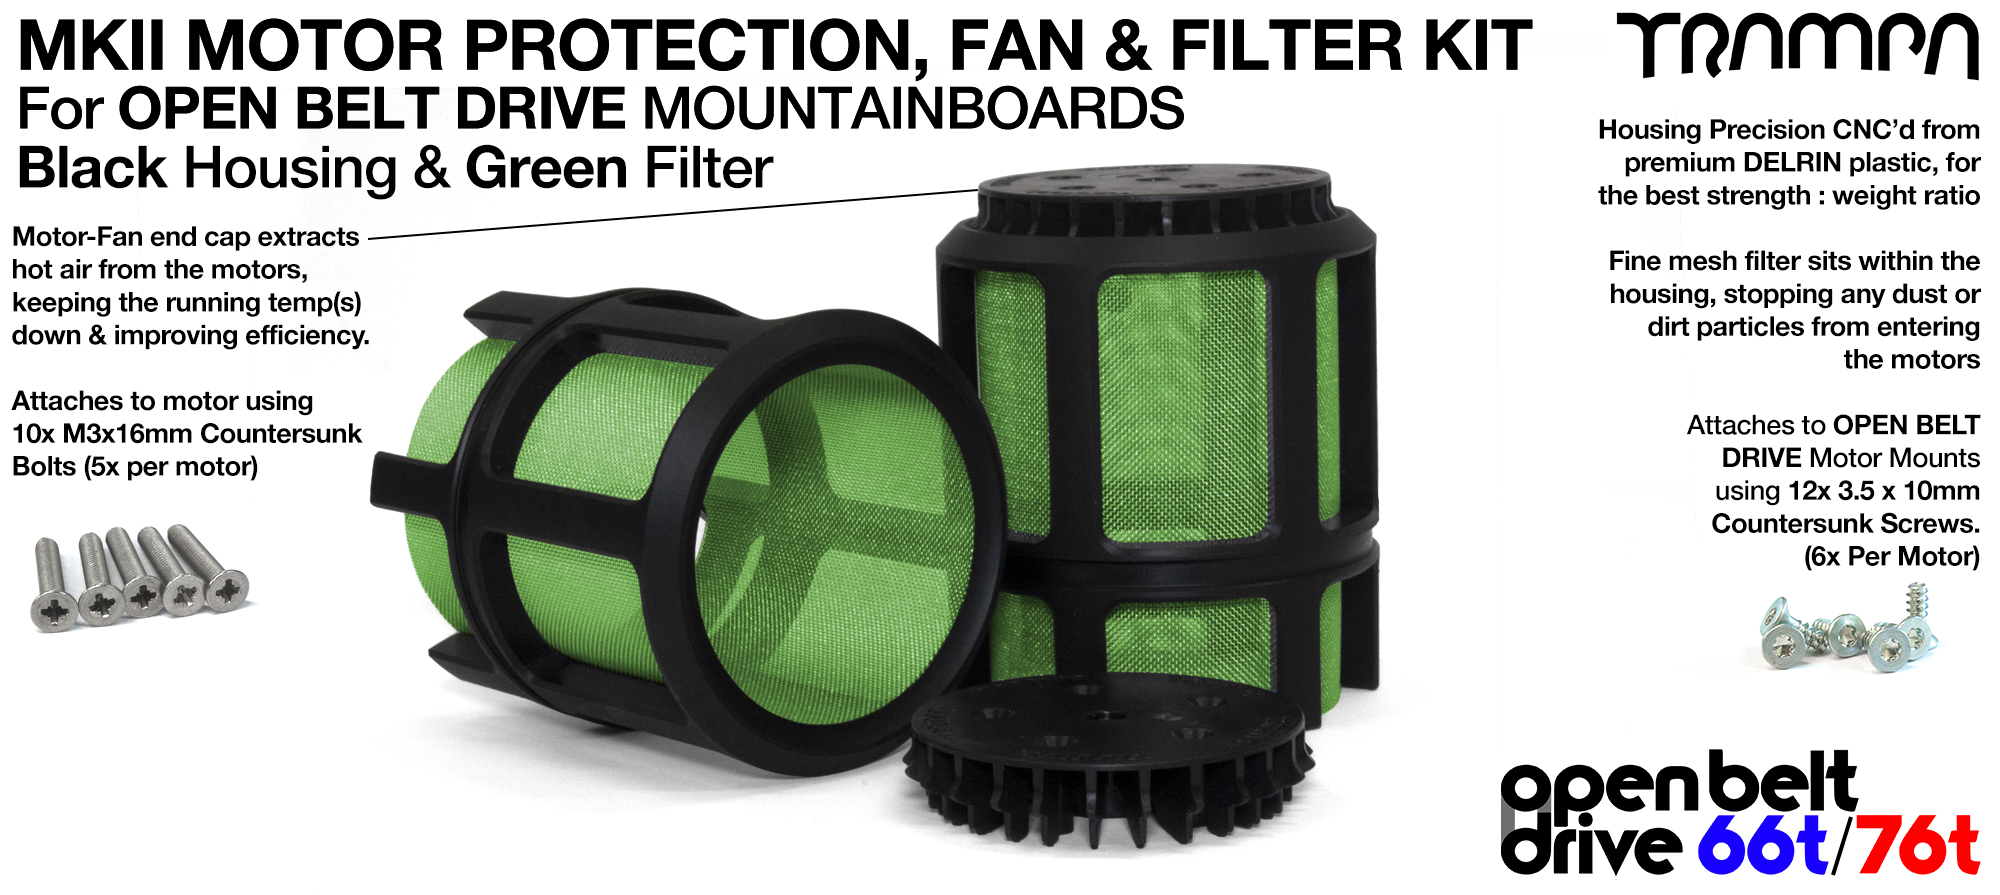 2x OBD MKII Motor protection Sleeve BLACK with GREEN Filter